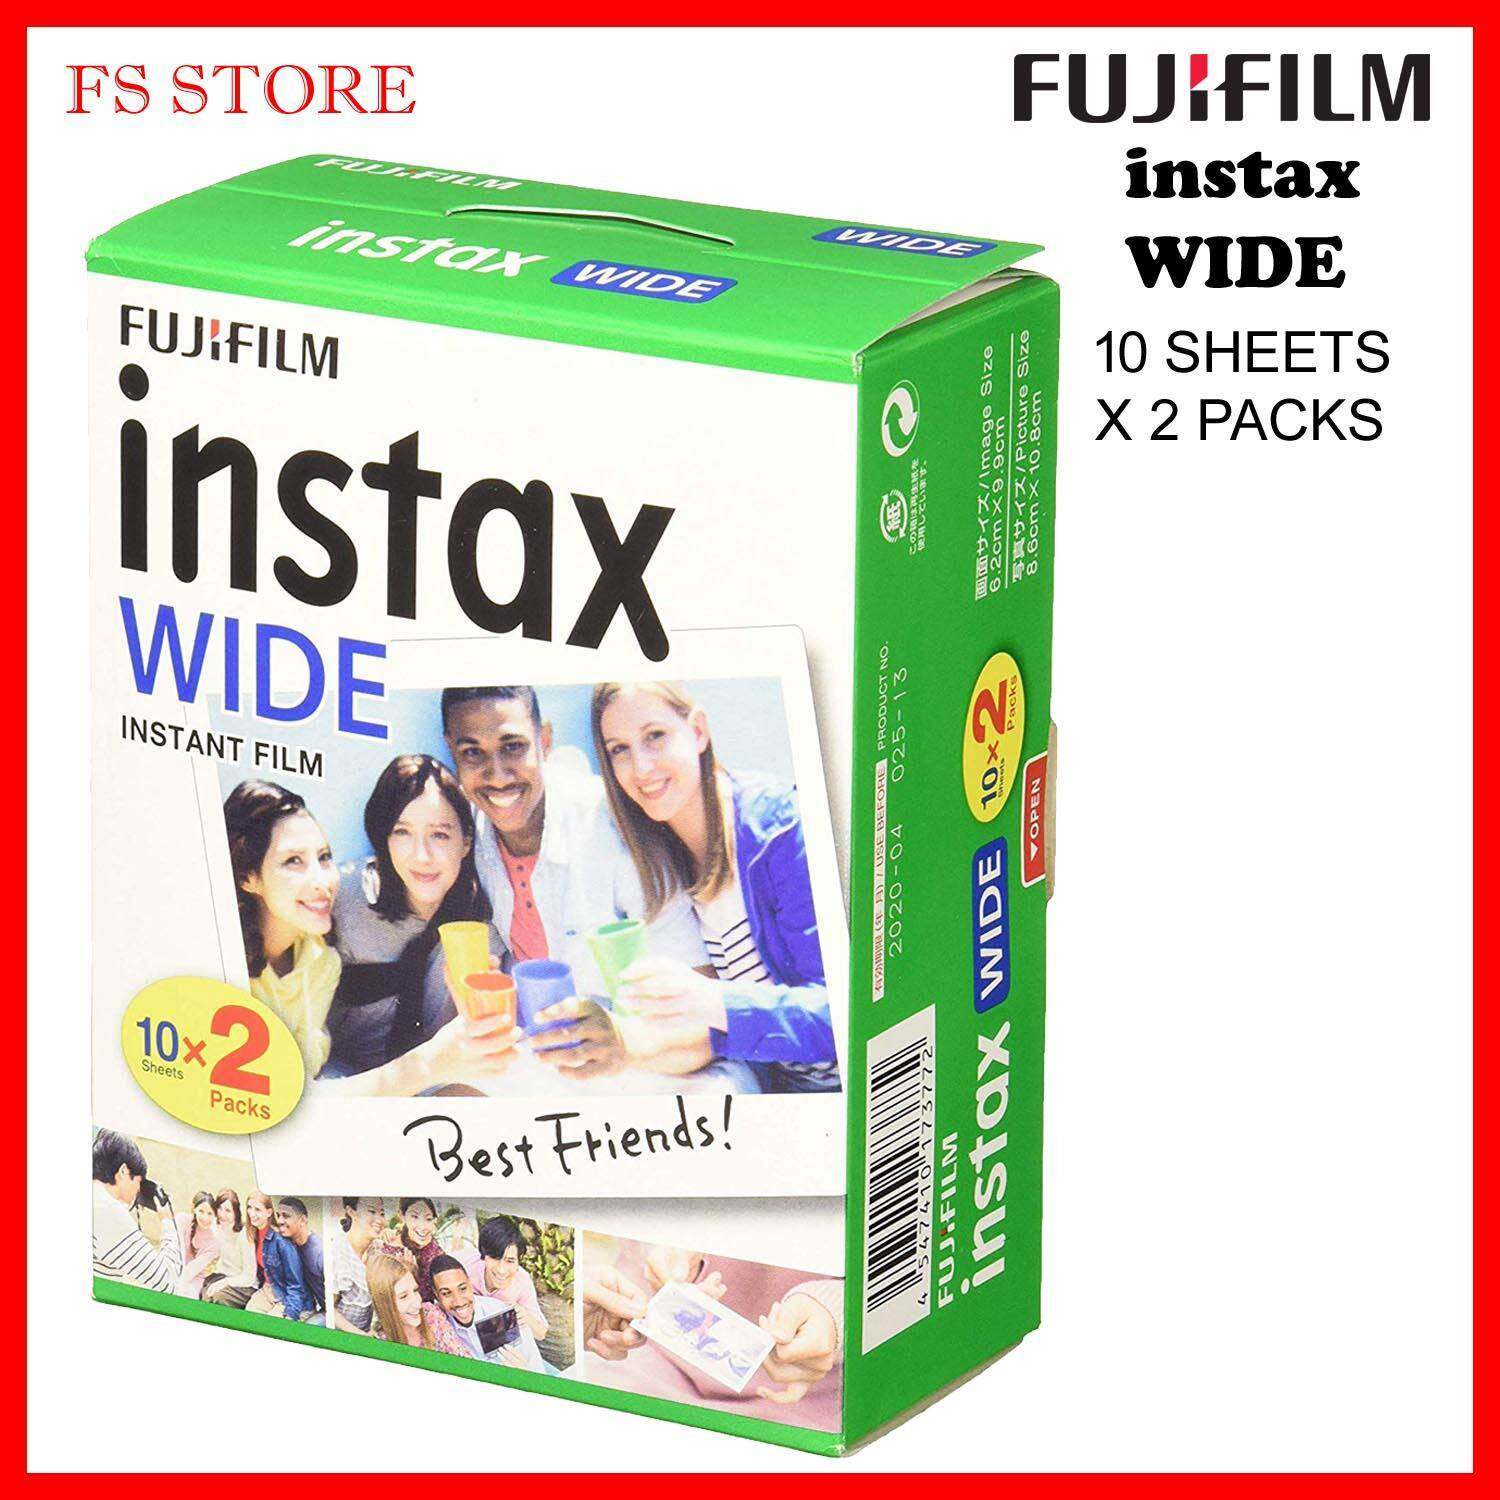 Fujifilm Original Malaysia Instax Wide Film Twin (10 Sheets X 2 Packs) Expired 03/ 2020 By Fs Store